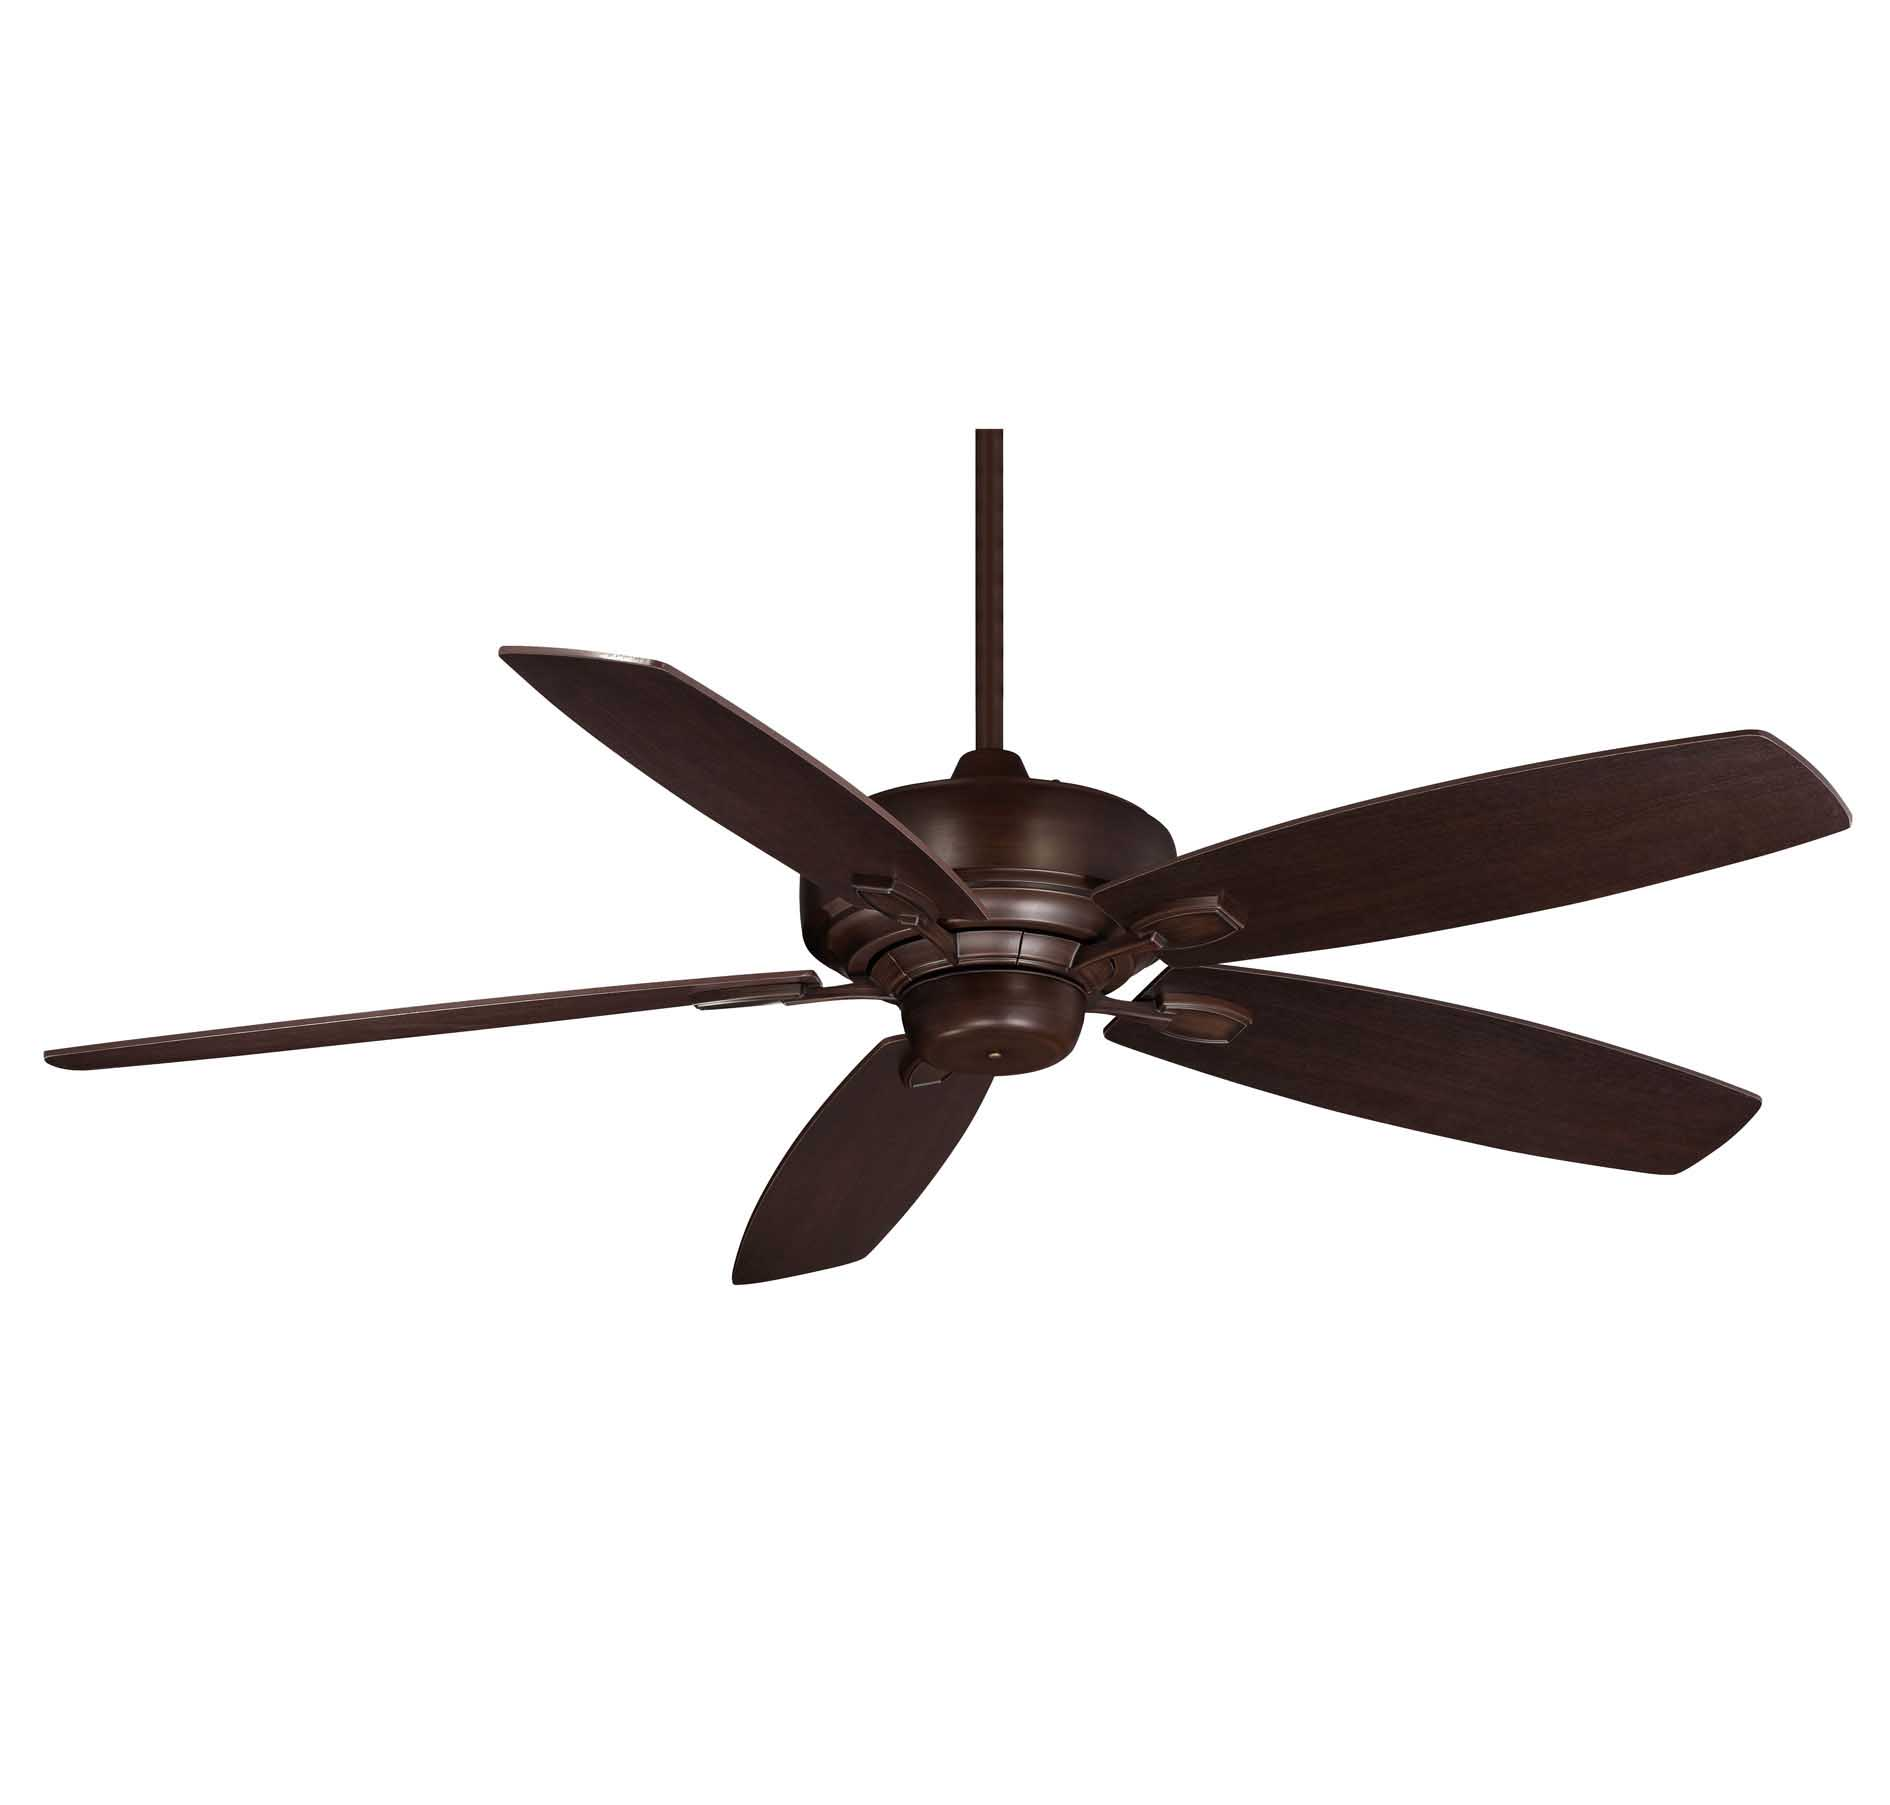 star ceiling fan photo - 3